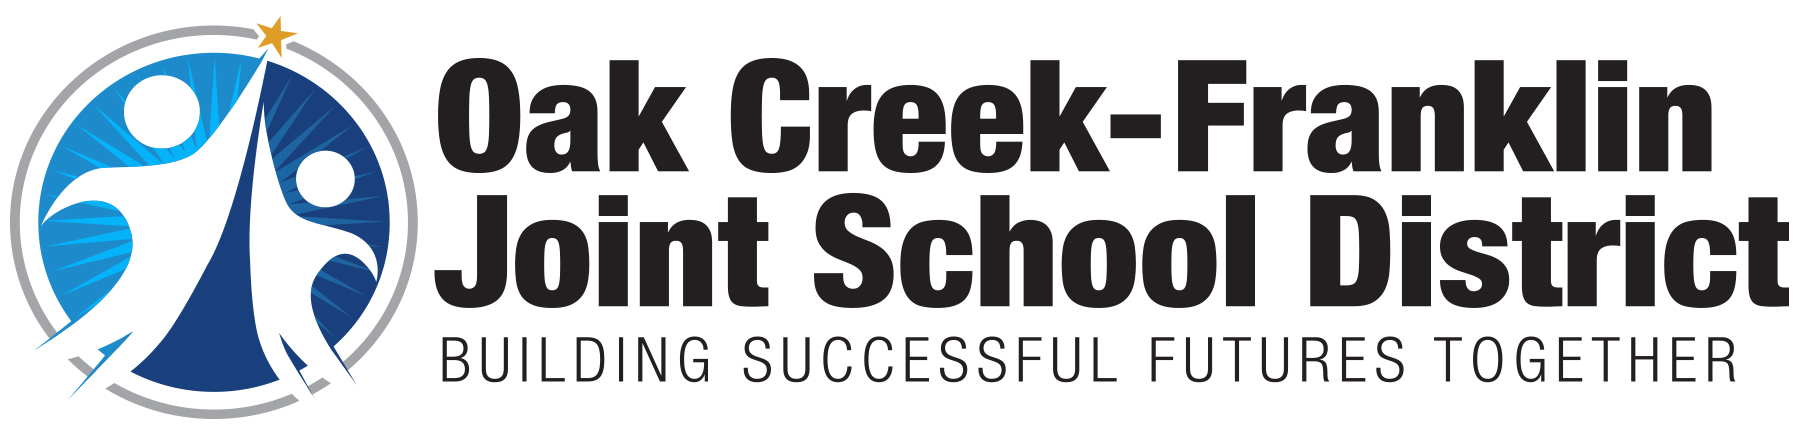 Oak Creek-Franklin Joint School District logo